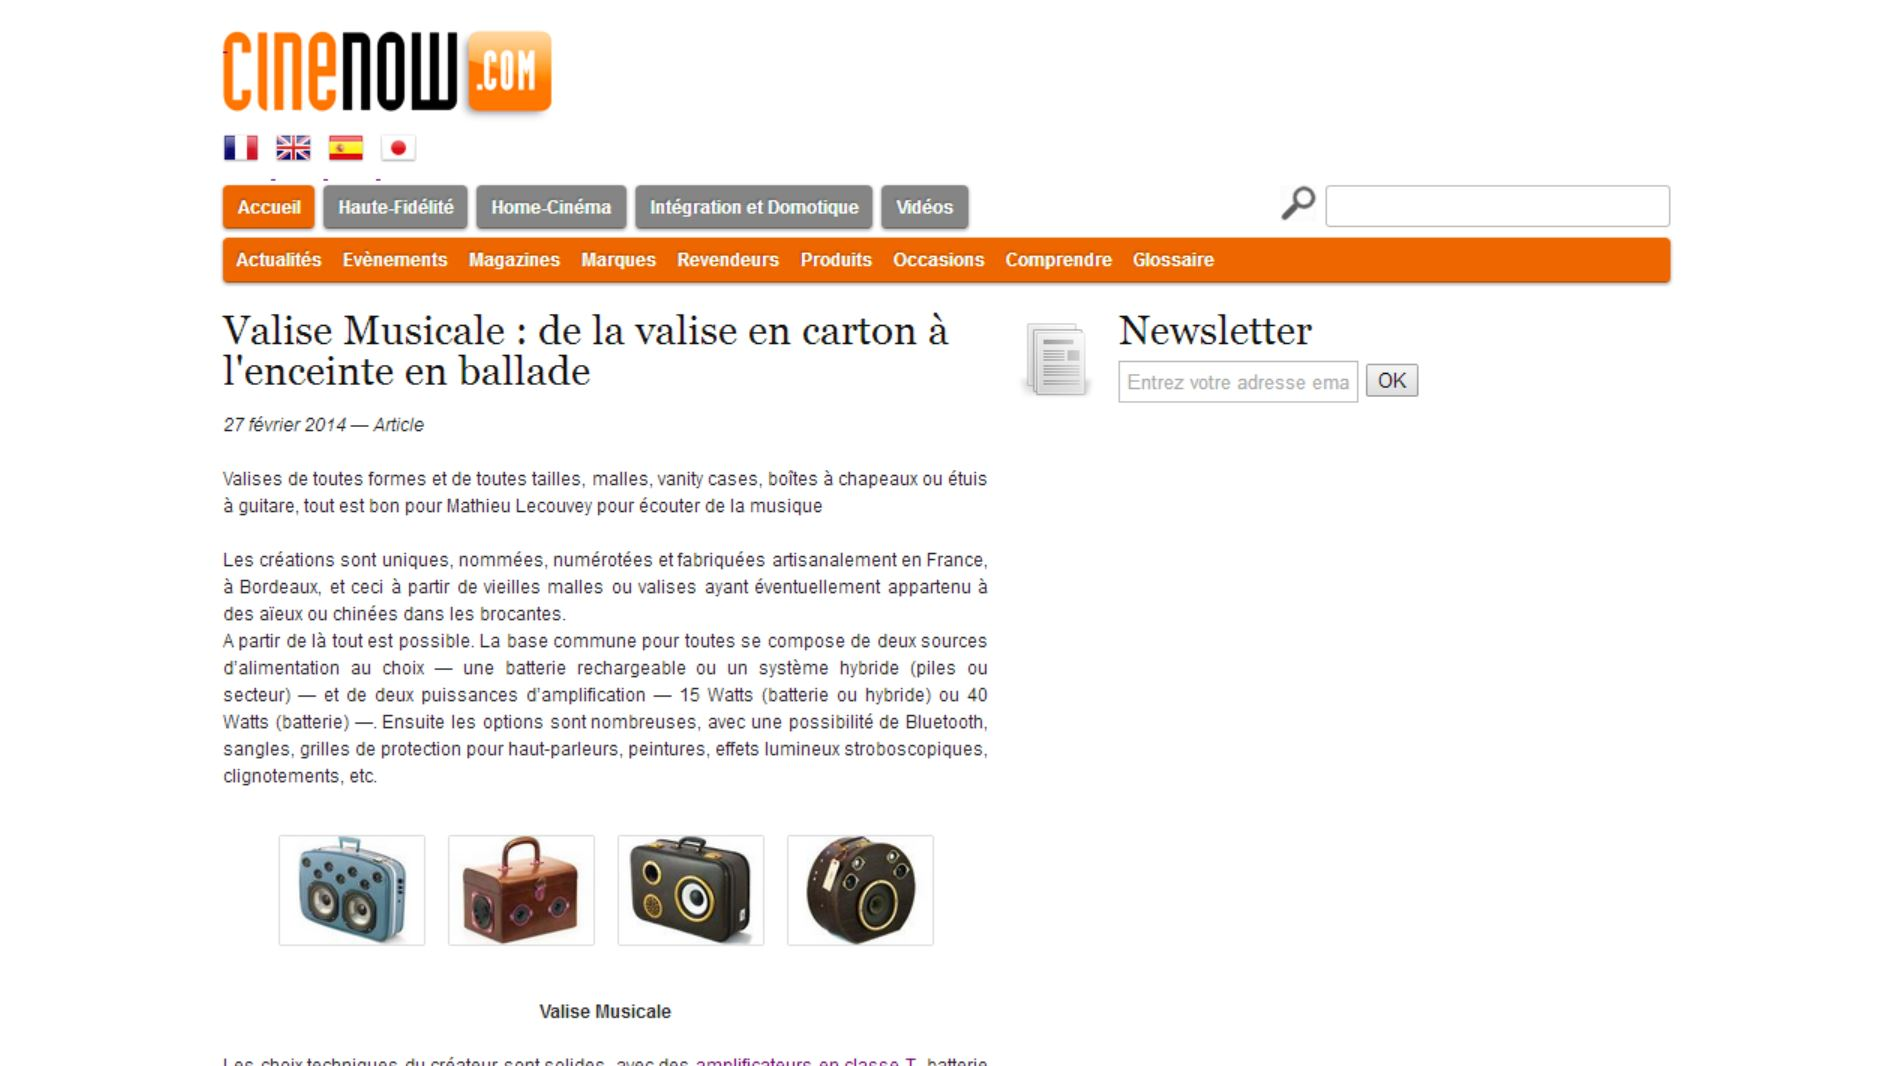 valise-musicale_article-blog_cinenow.com